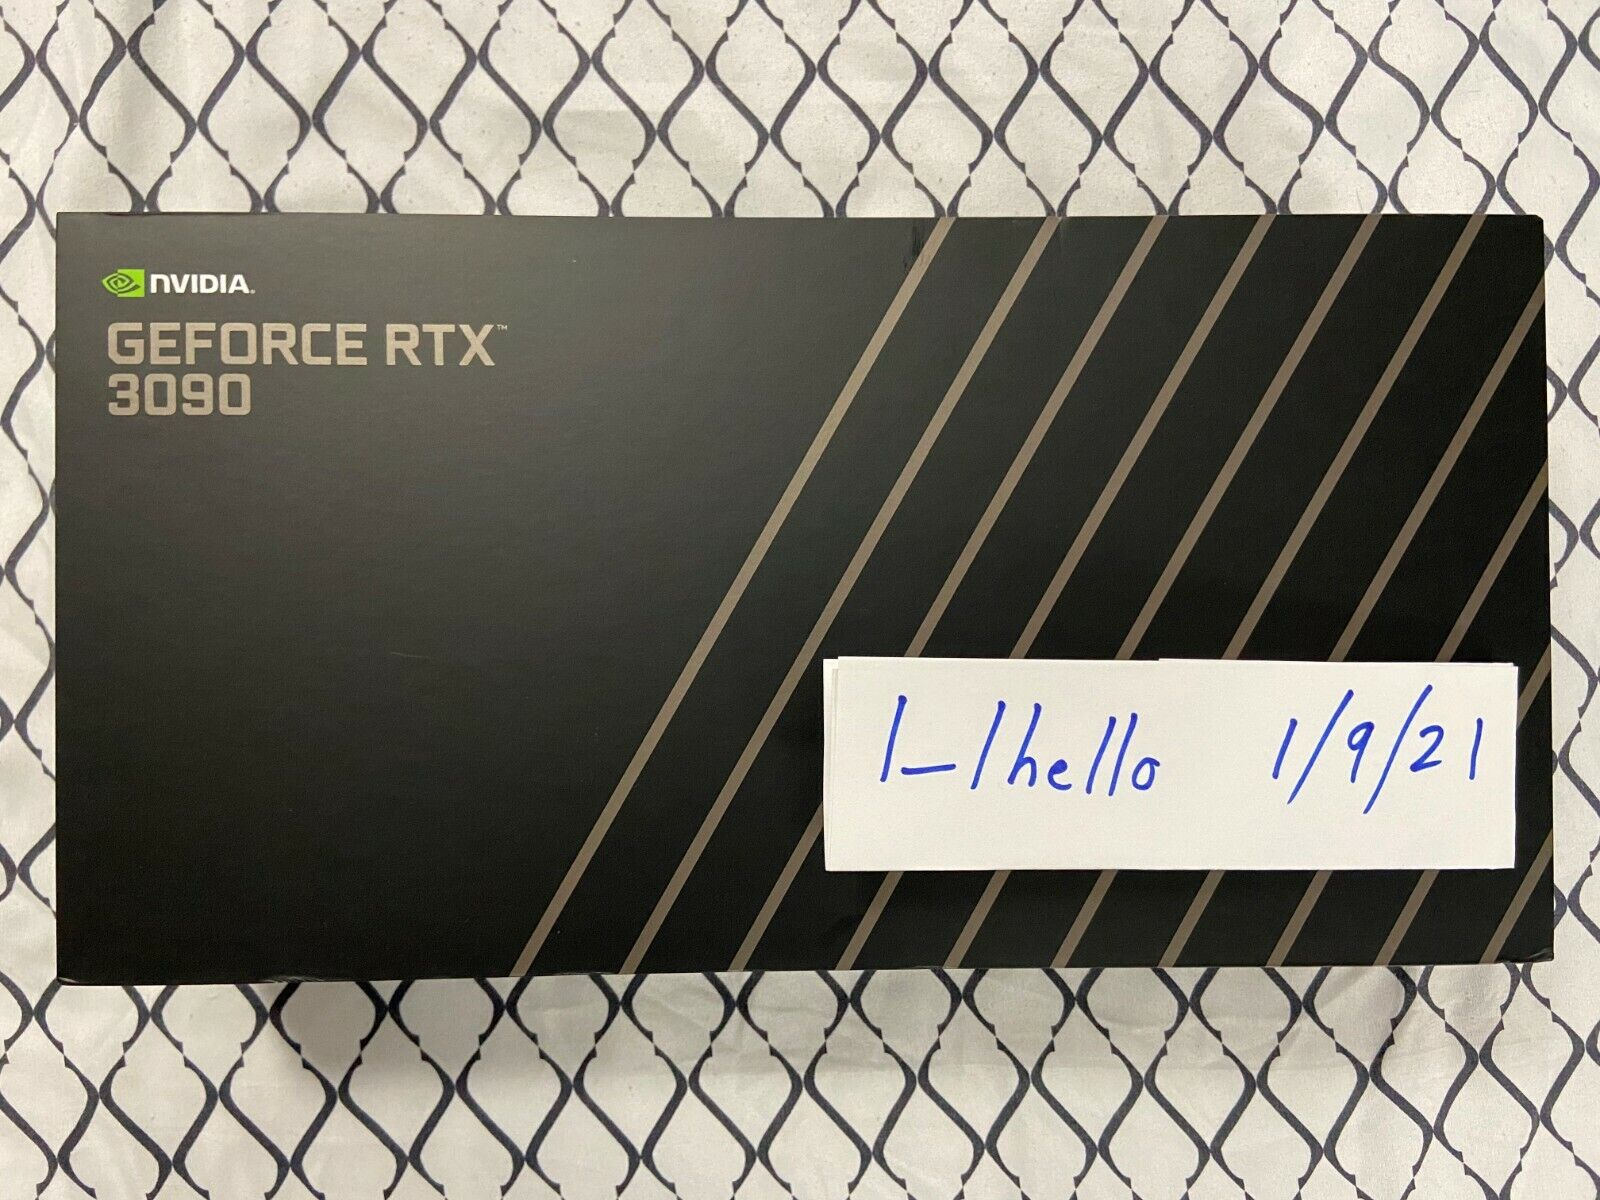 NVIDIA GeForce RTX 3090 Founders Edition In Hand - Free Priority Shipping  - $1,935.00